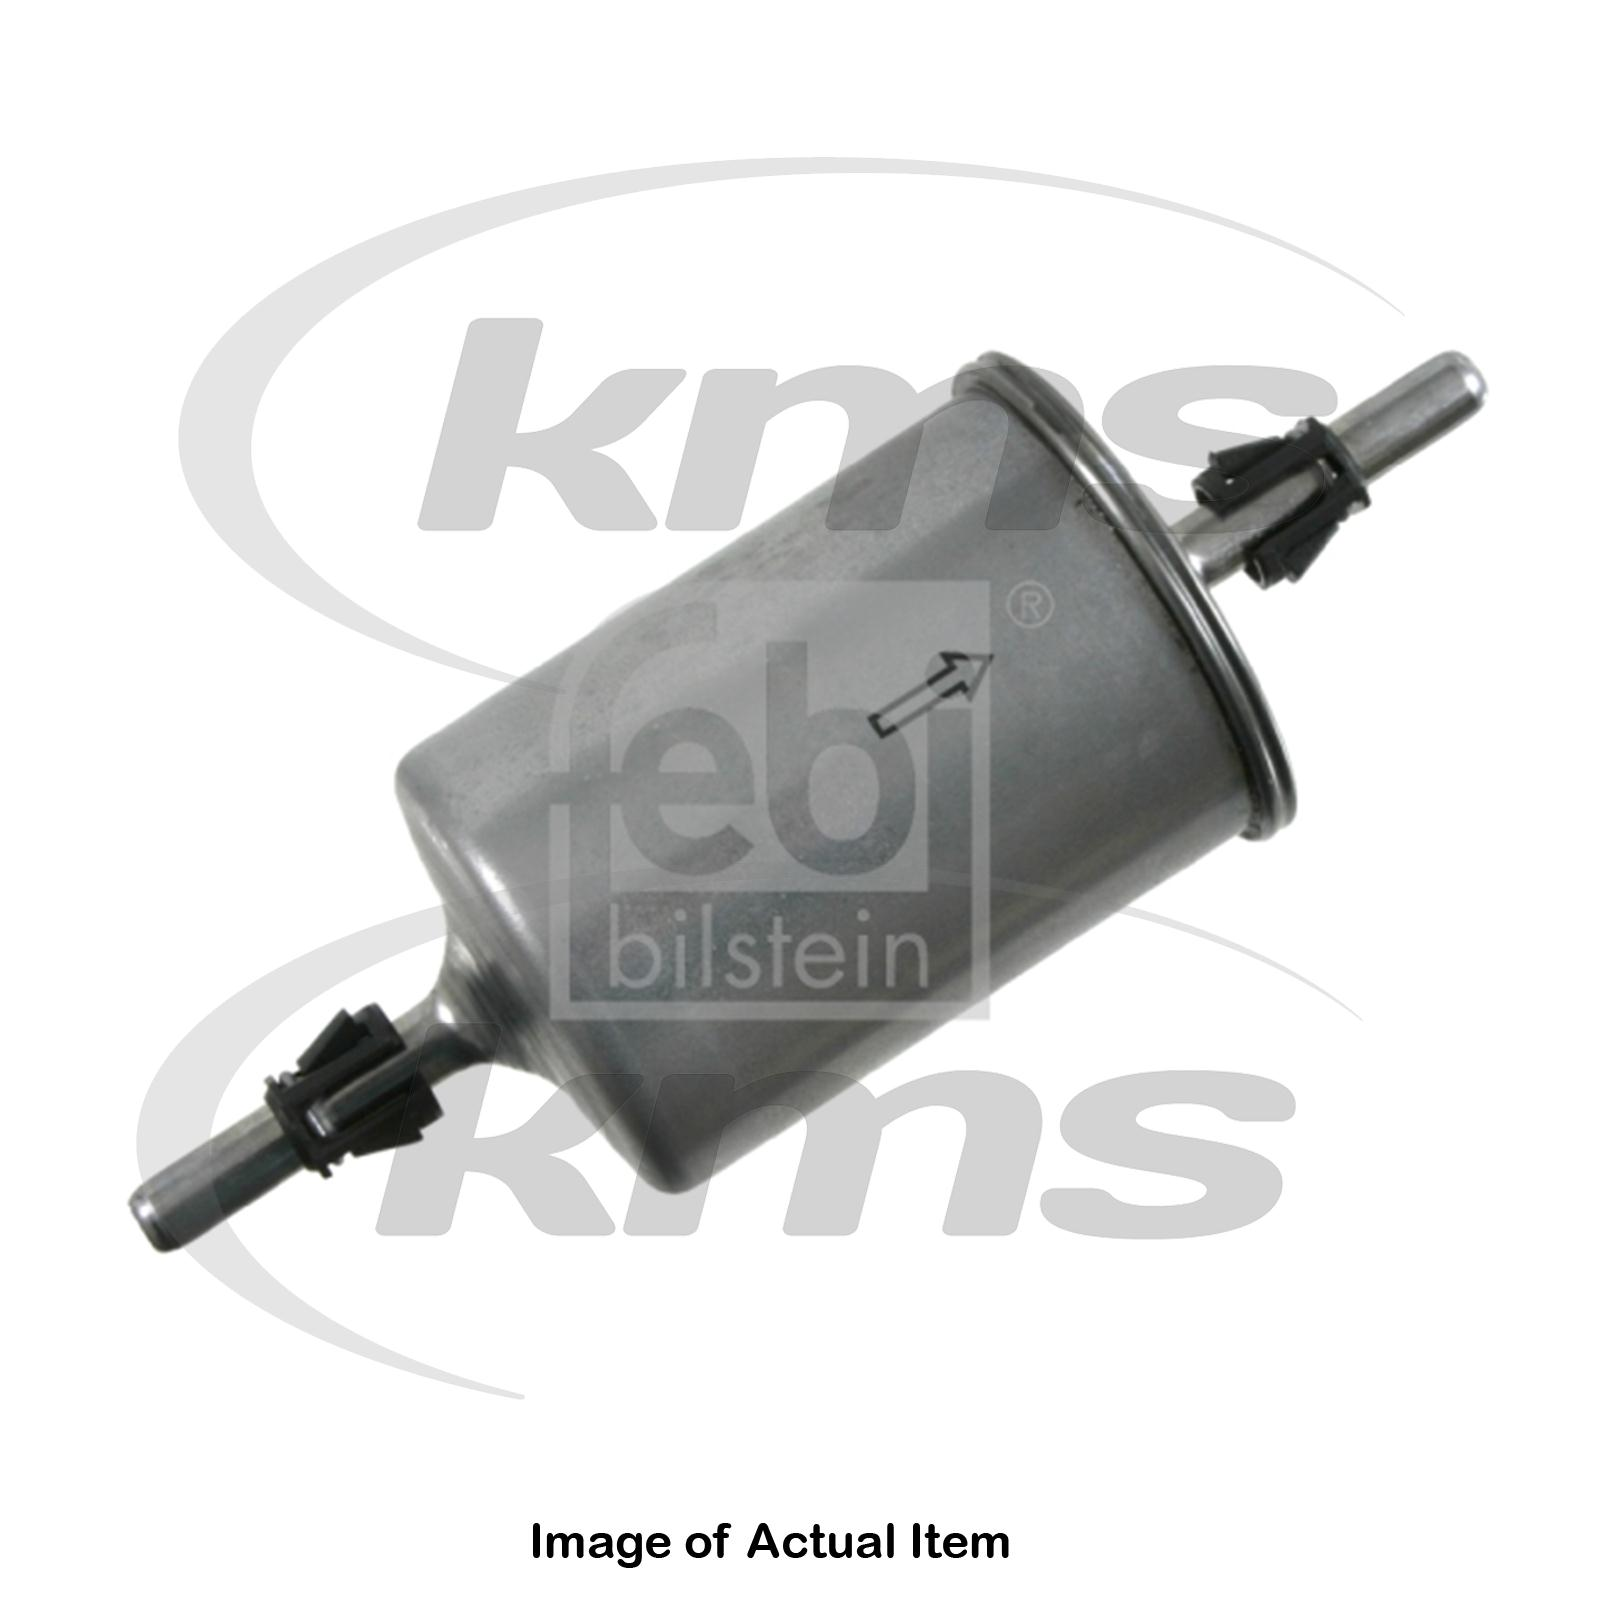 New Genuine Febi Bilstein Fuel Filter 17635 Top German Quality Ebay 2000 Vw Beetle Sentinel